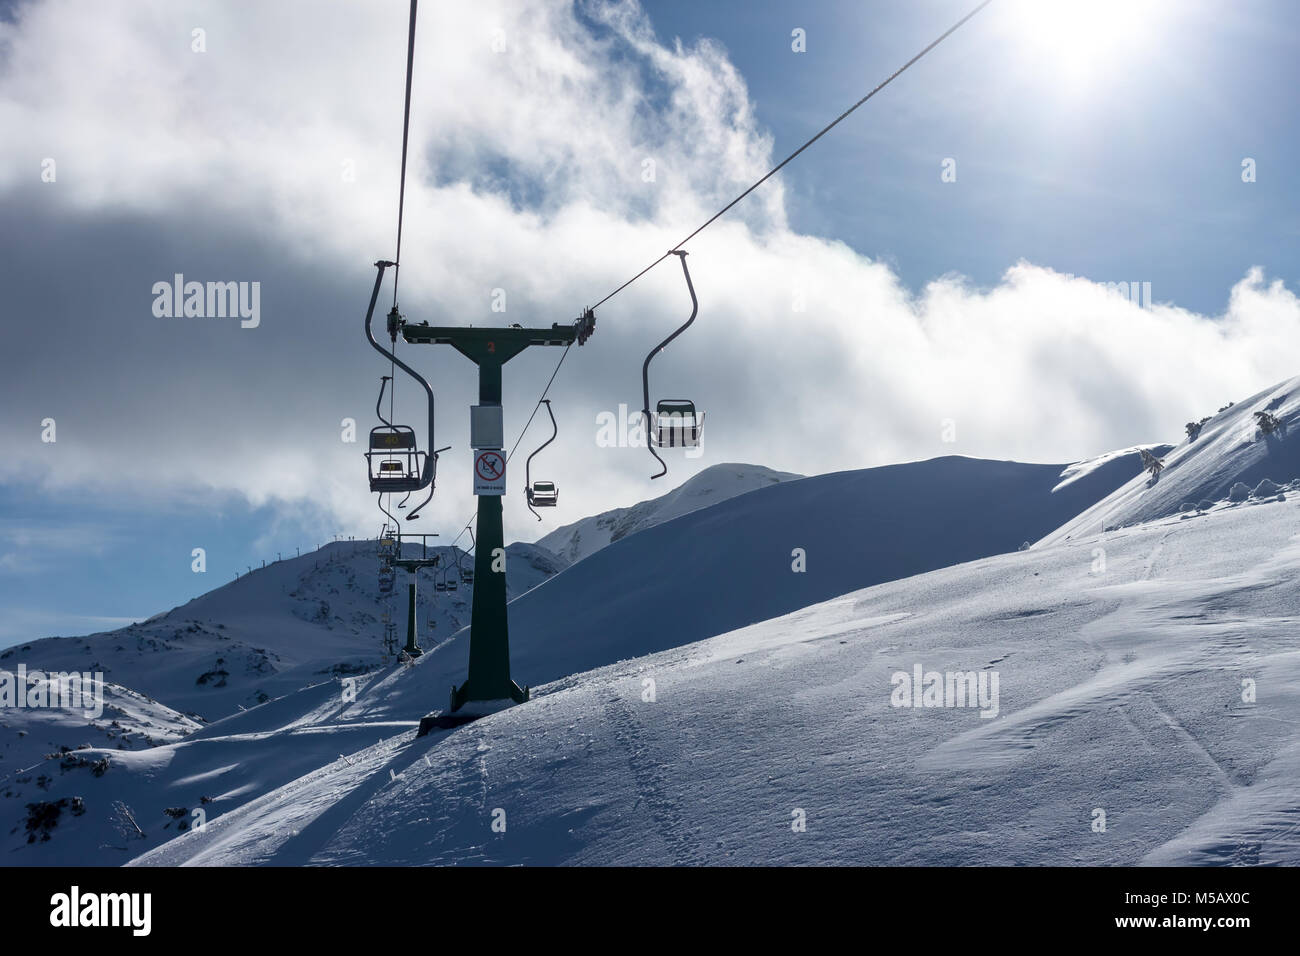 winter ski resort chairlift - Stock Image